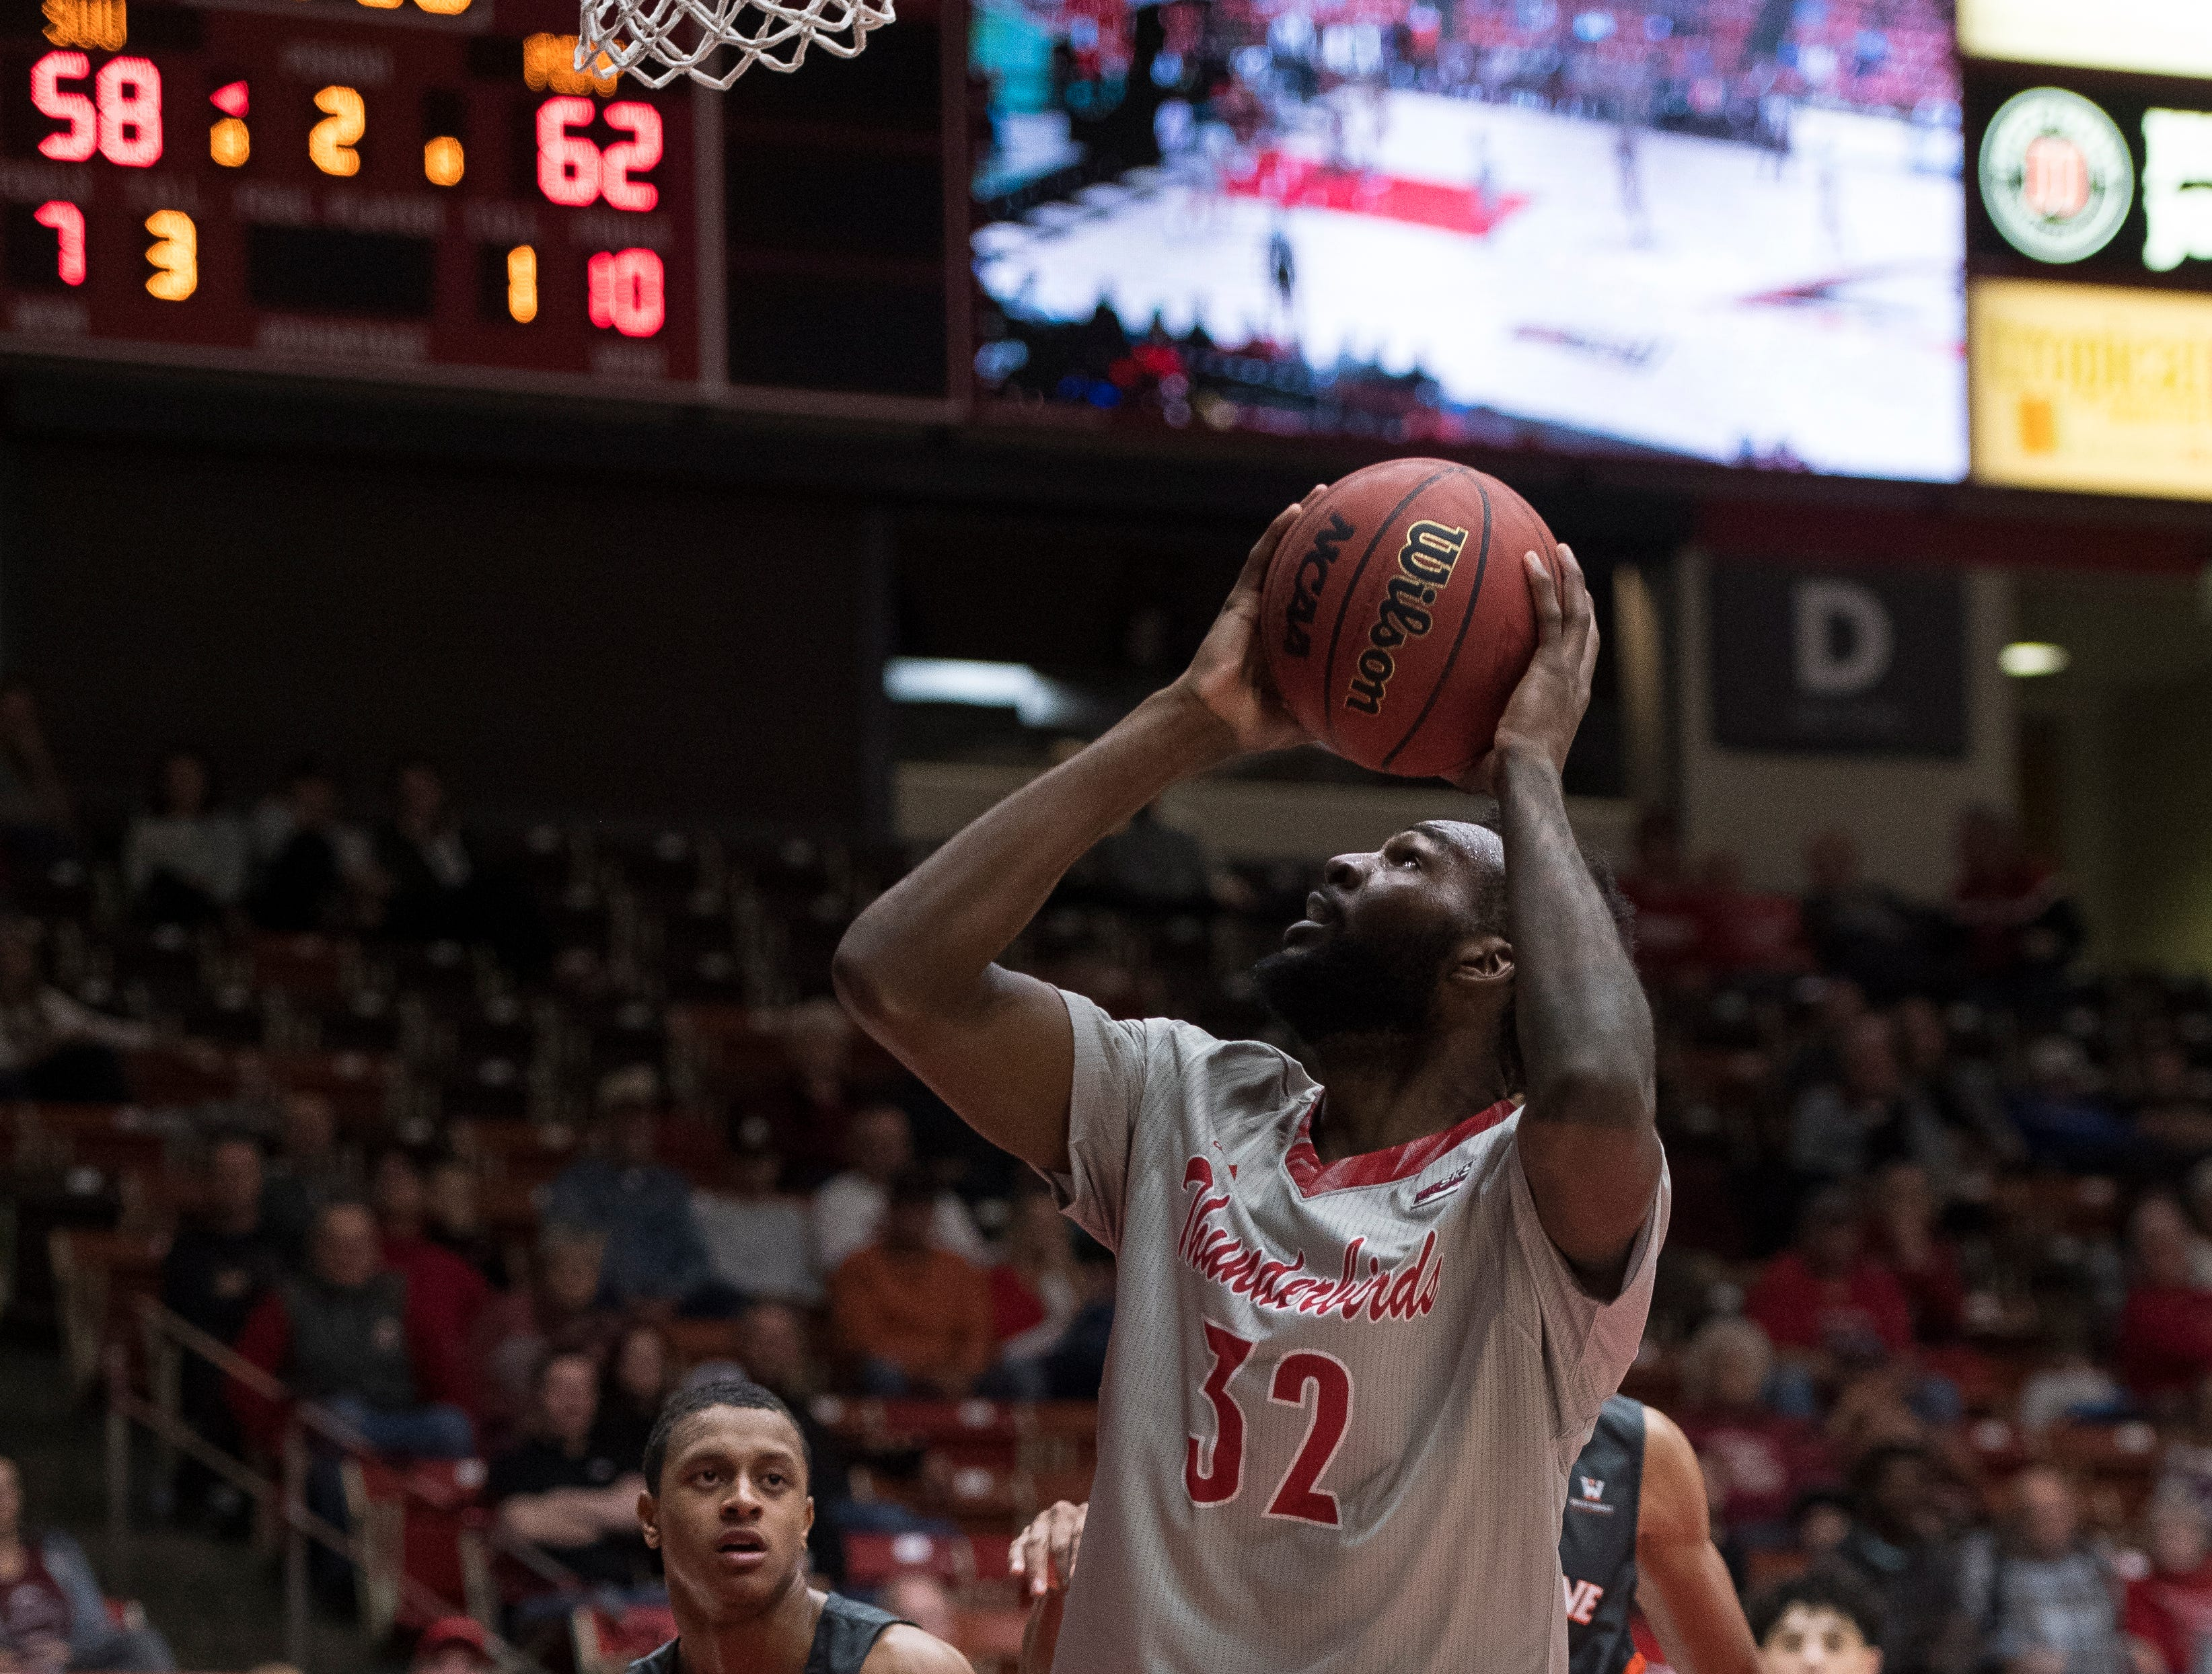 Southern Utah University junior Andre Adams (32) scores from under the basket against Pepperdine University in the America First Event Center Saturday, December 15, 2018. SUU won in overtime, 78-69.